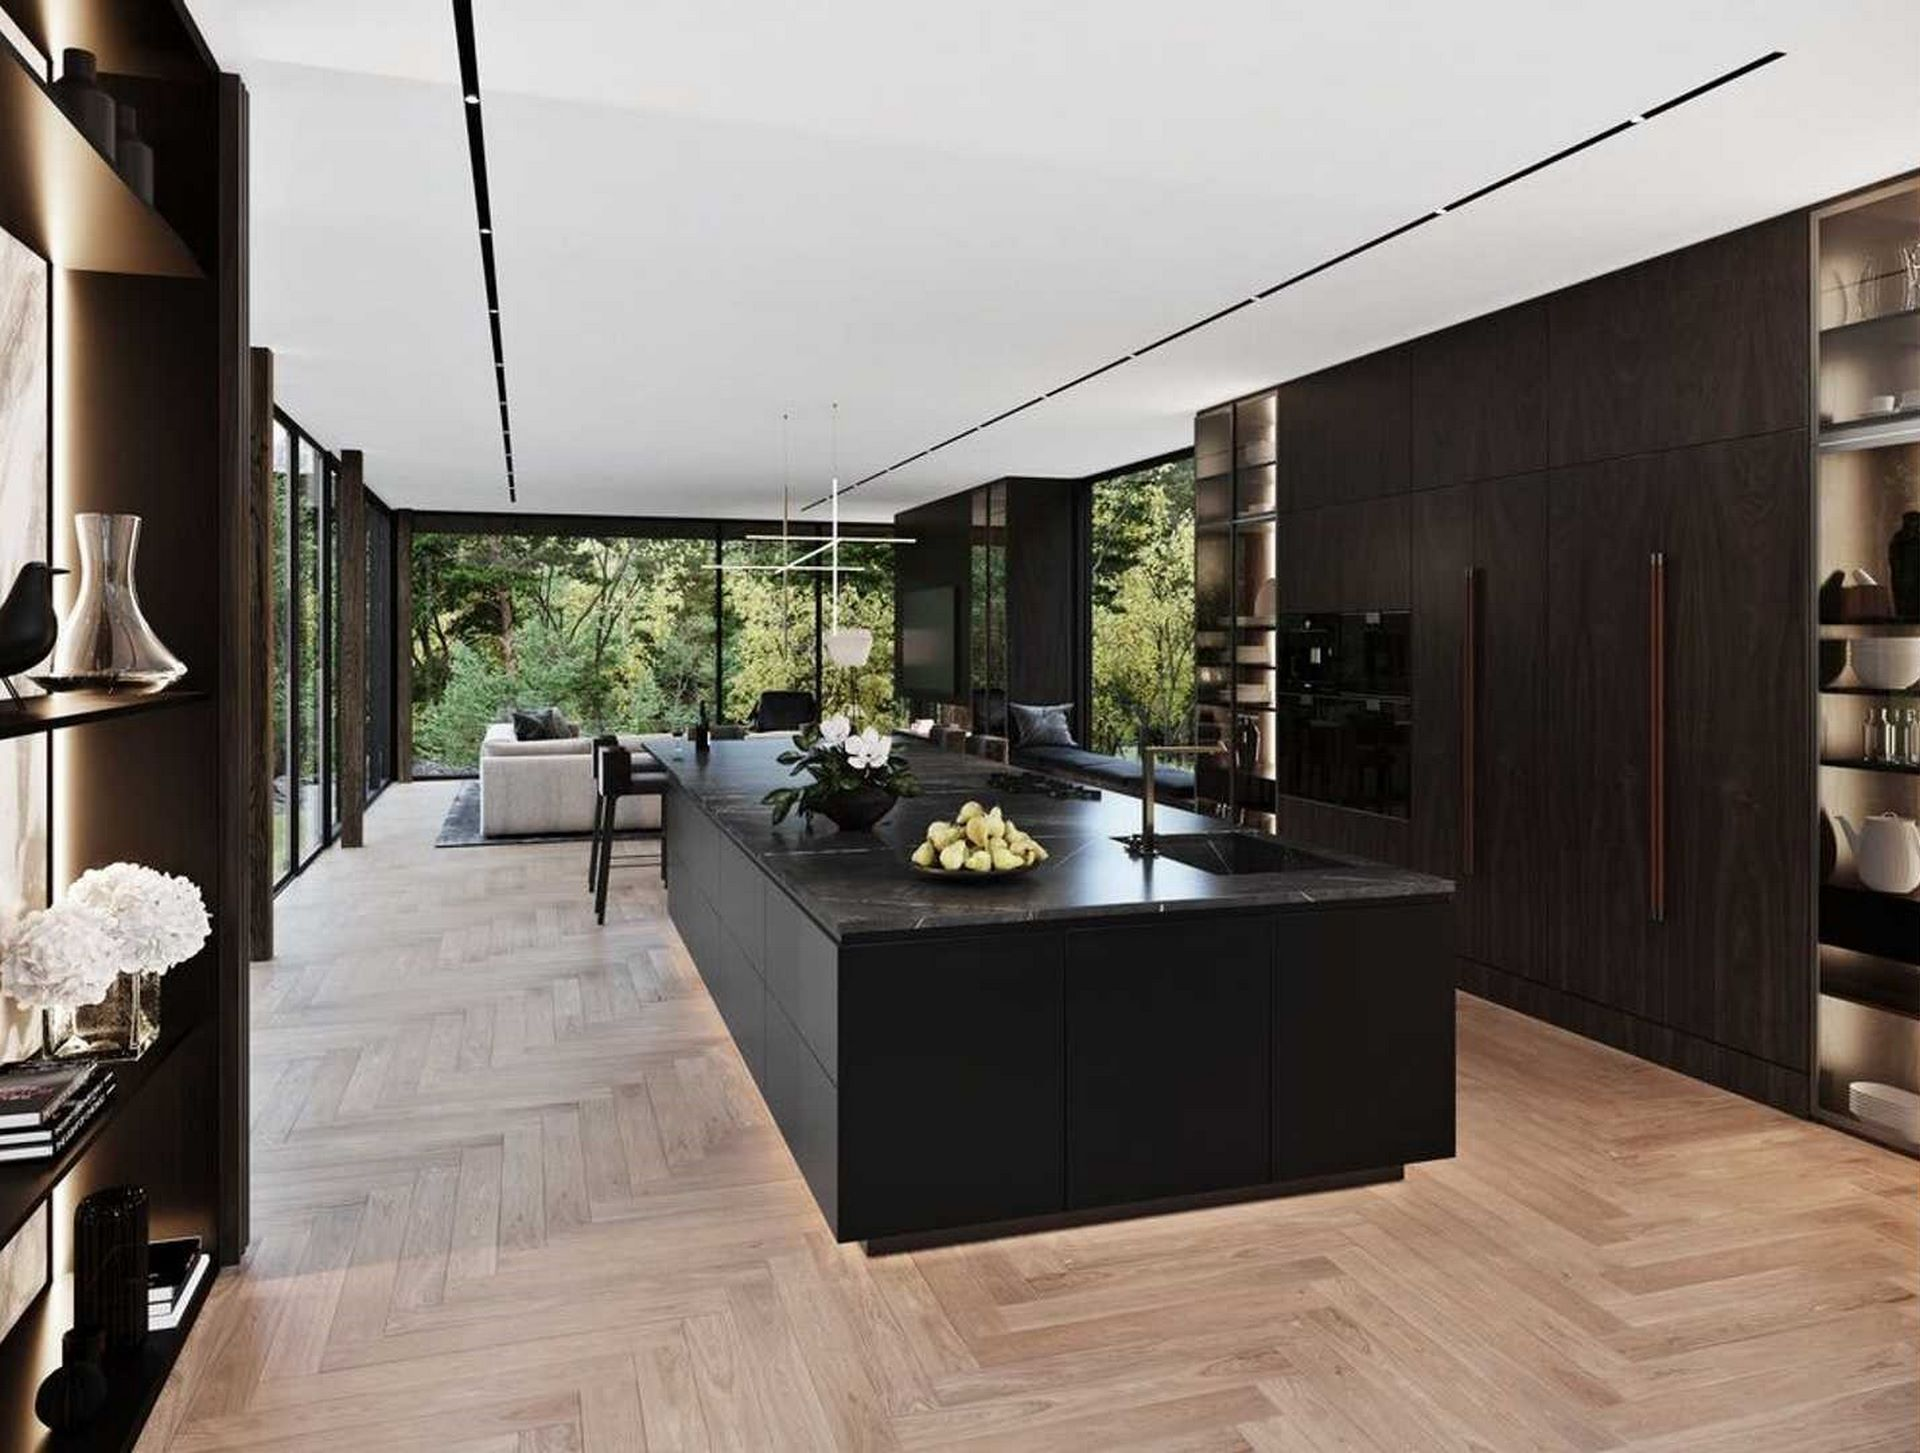 Sylvan-Rock-by-S3-Architecture-and-Aston-Martin-Design-15